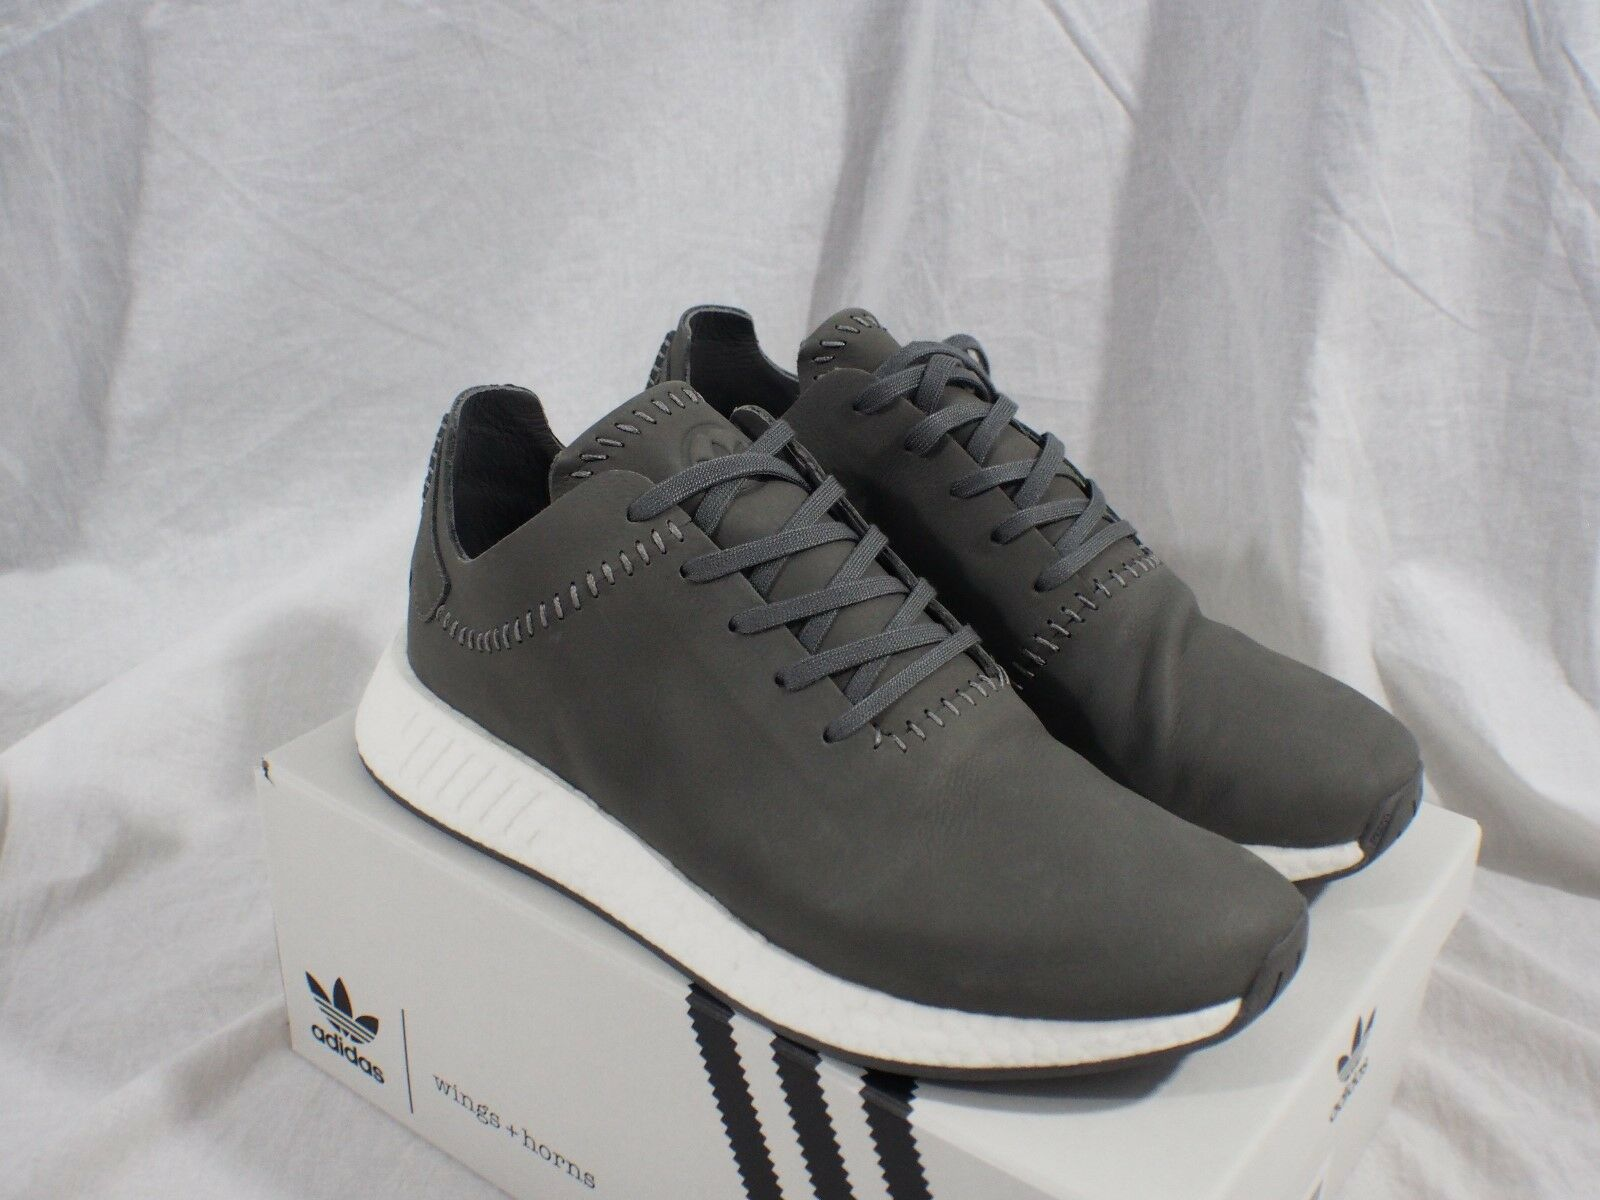 official photos 46cf5 5212e adidas NMD R2 Wings Horns Bb3117 Ash Leather Size 11 US